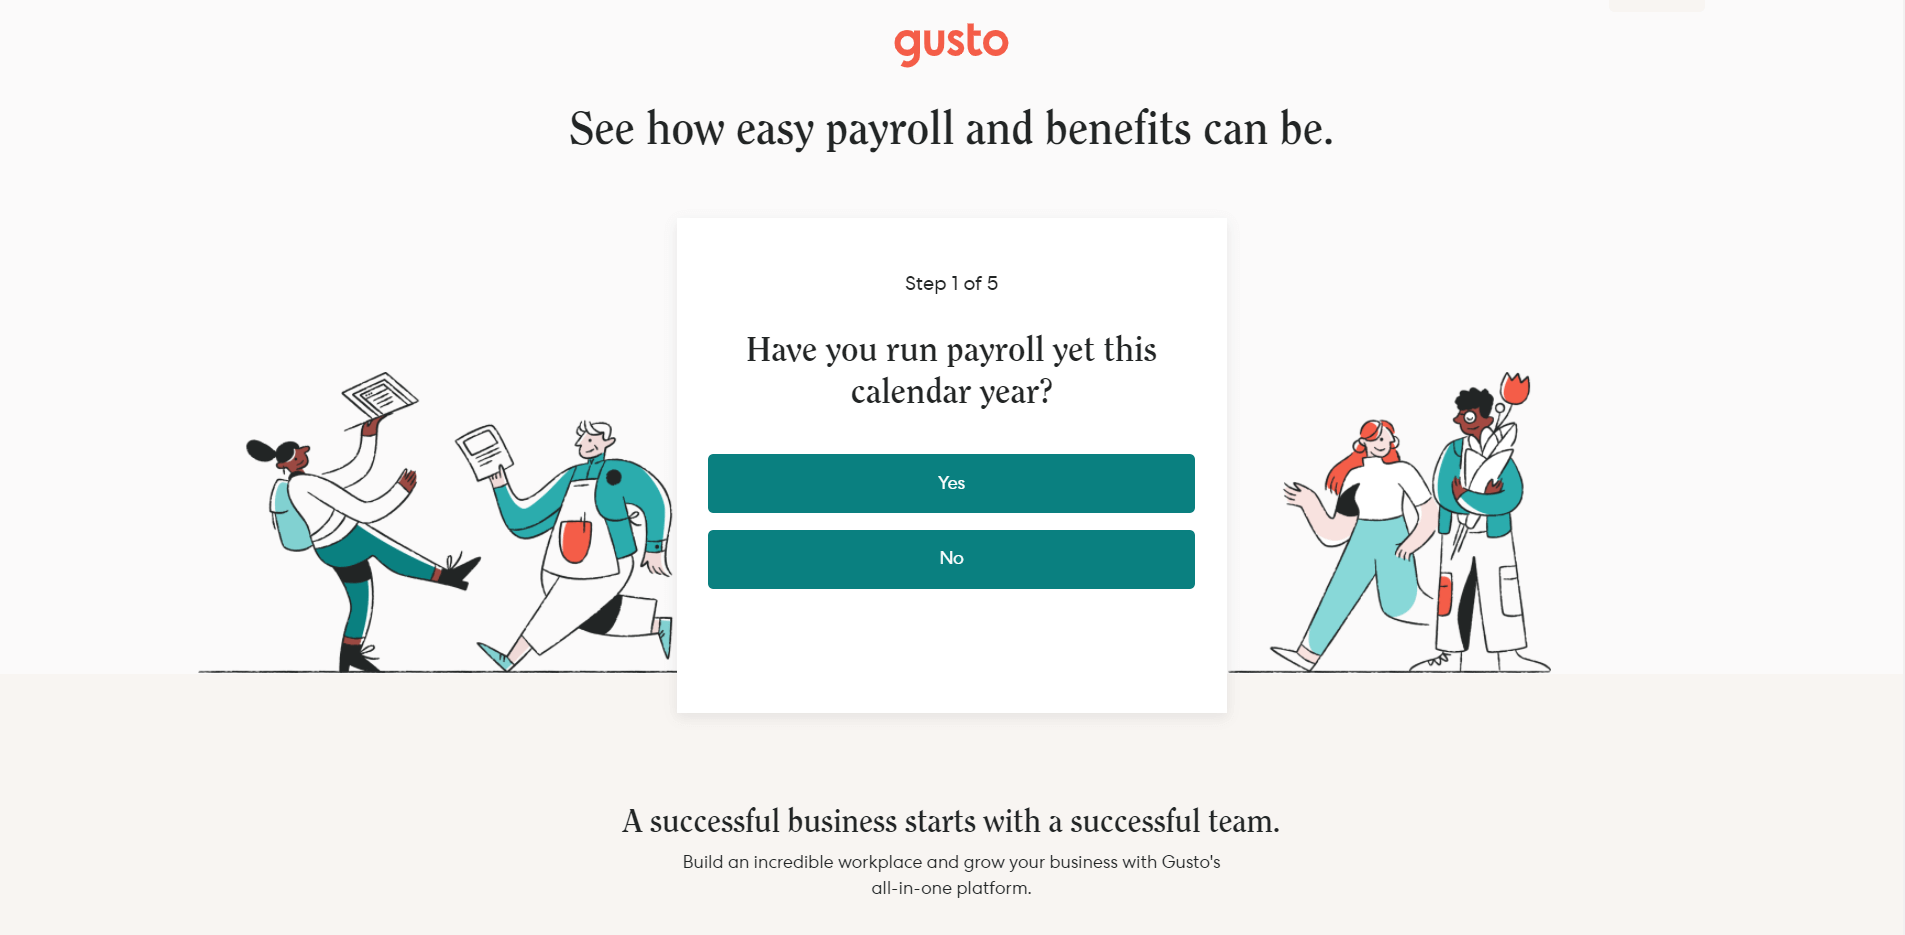 The payment processing technology Gusto's homepage.